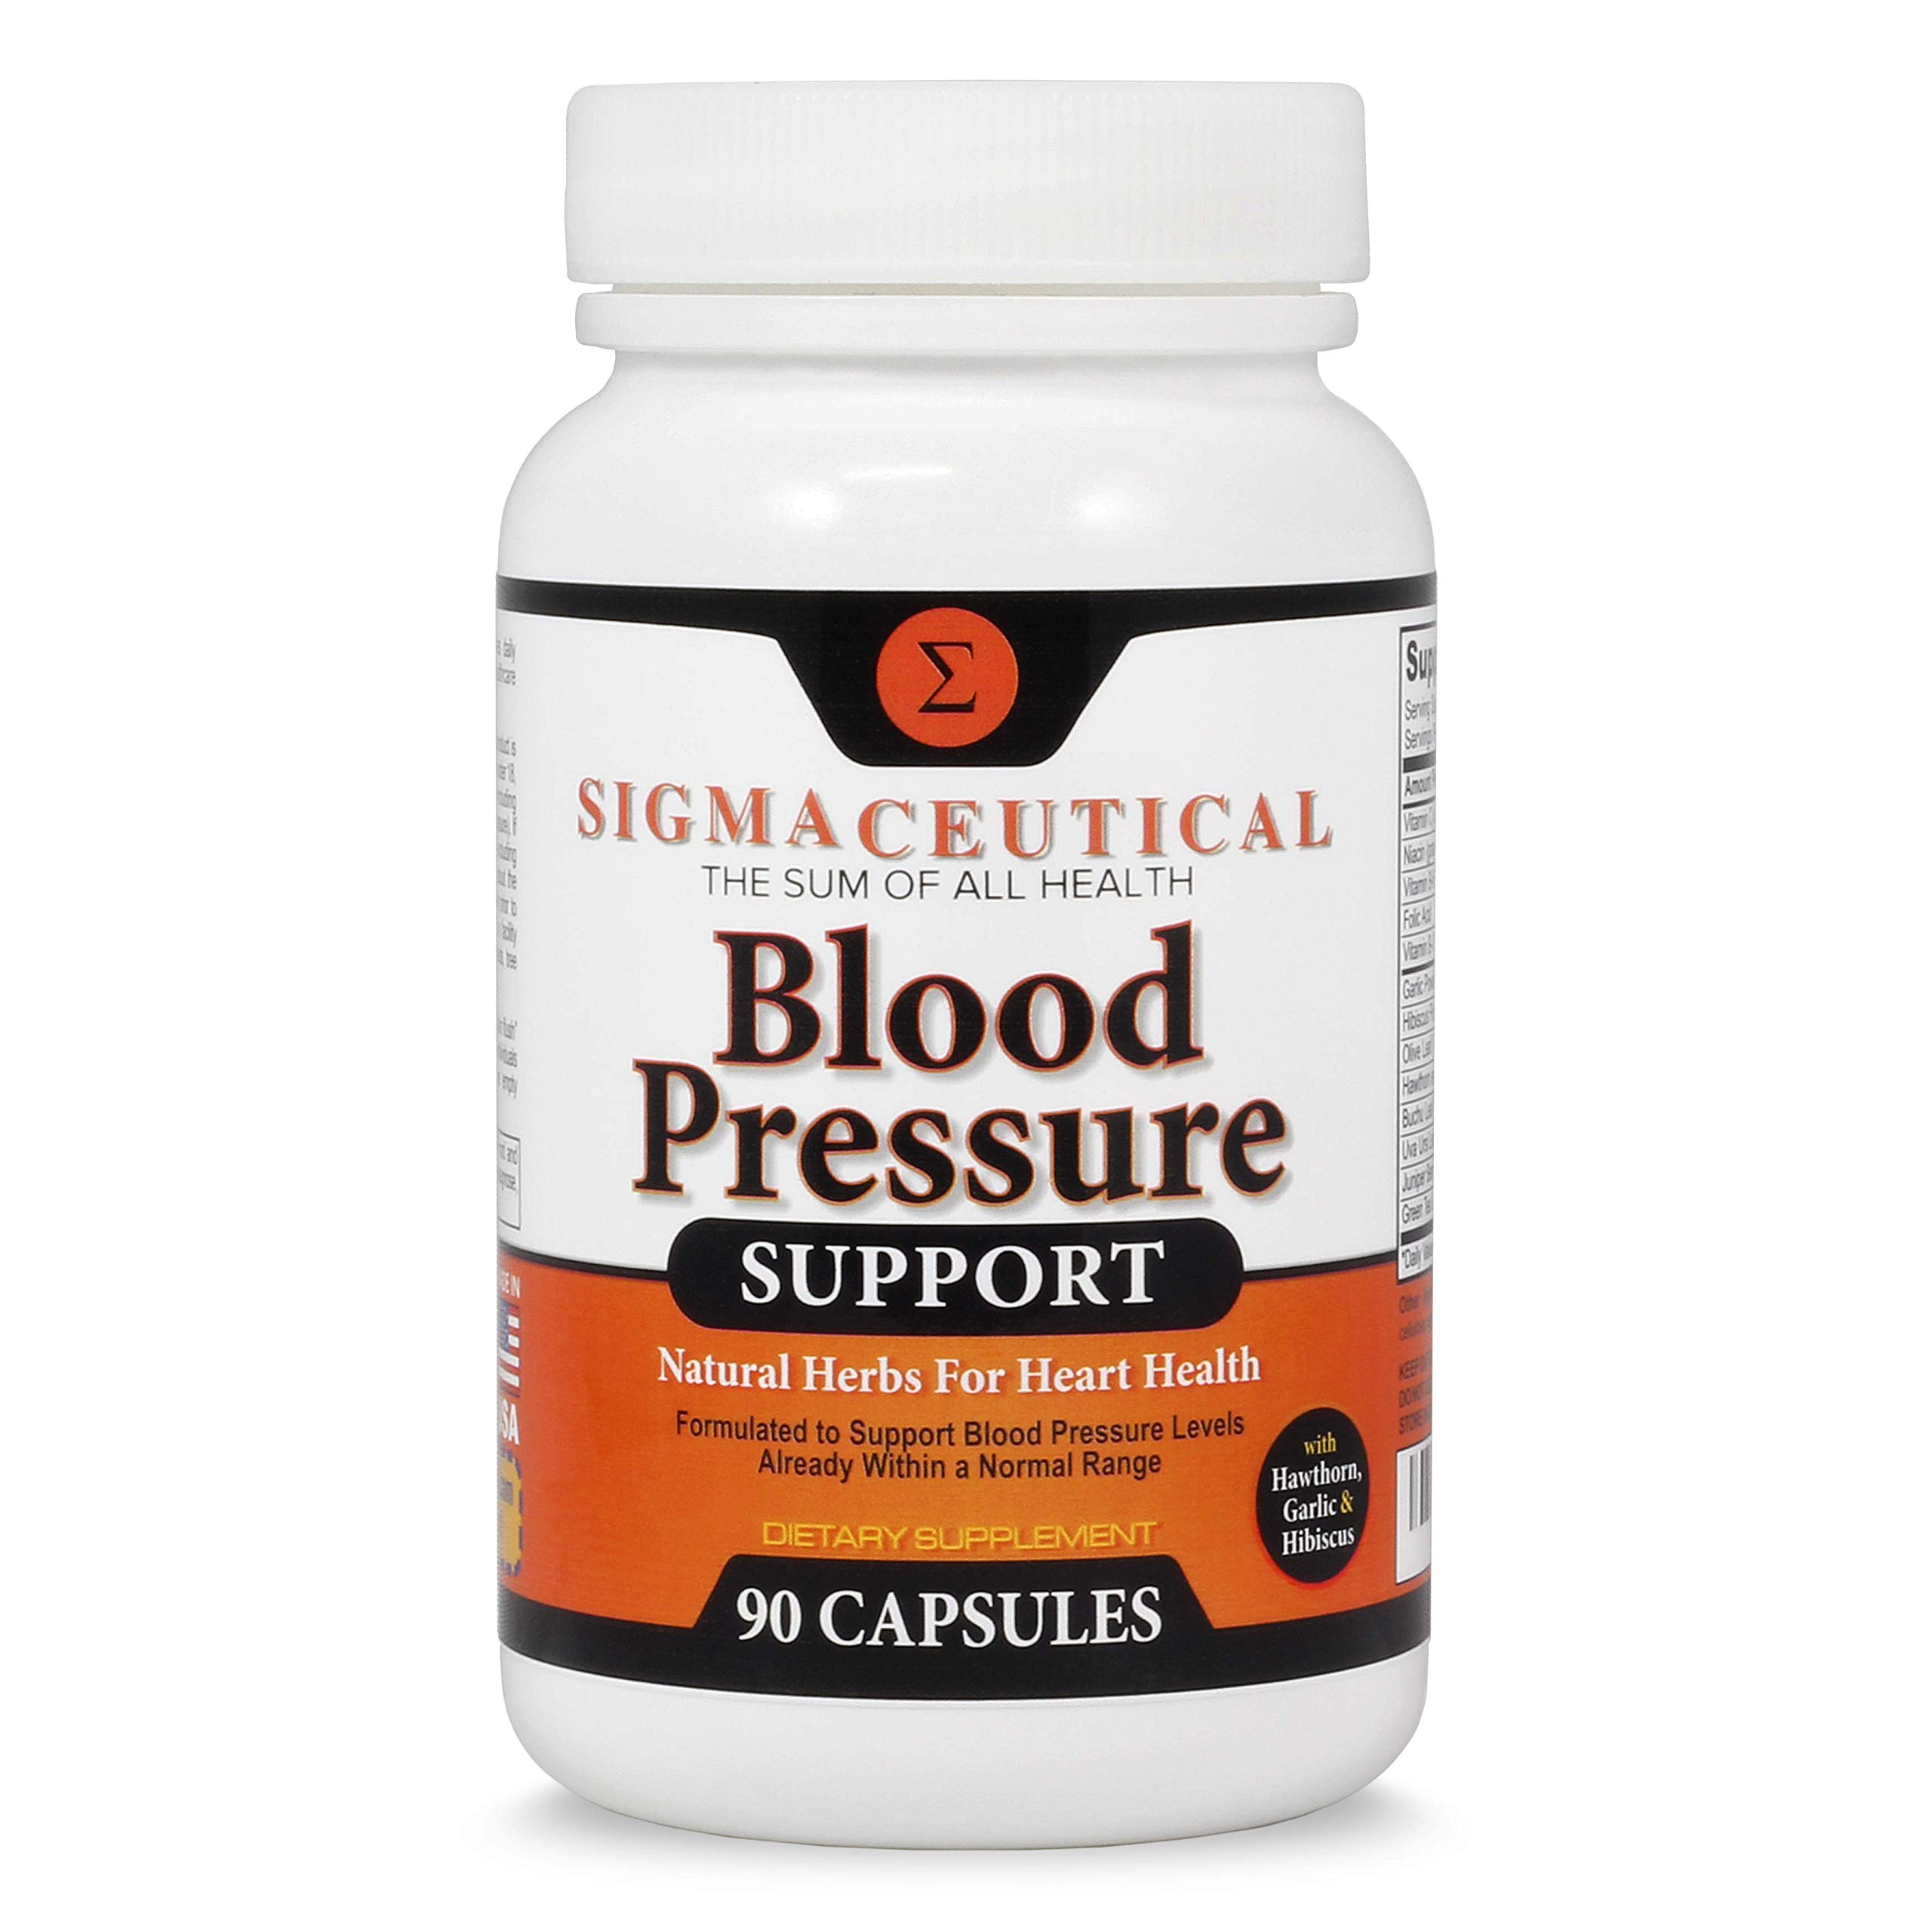 5 Pack of Premium Blood Pressure Support Formula - High Blood Pressure Supplement w/Vitamins, Hawthorn Extract, Olive Leaf, Garlic Extract & Hibiscus Supplement - 90 Capsules Each by Sigmaceutical (Image #9)